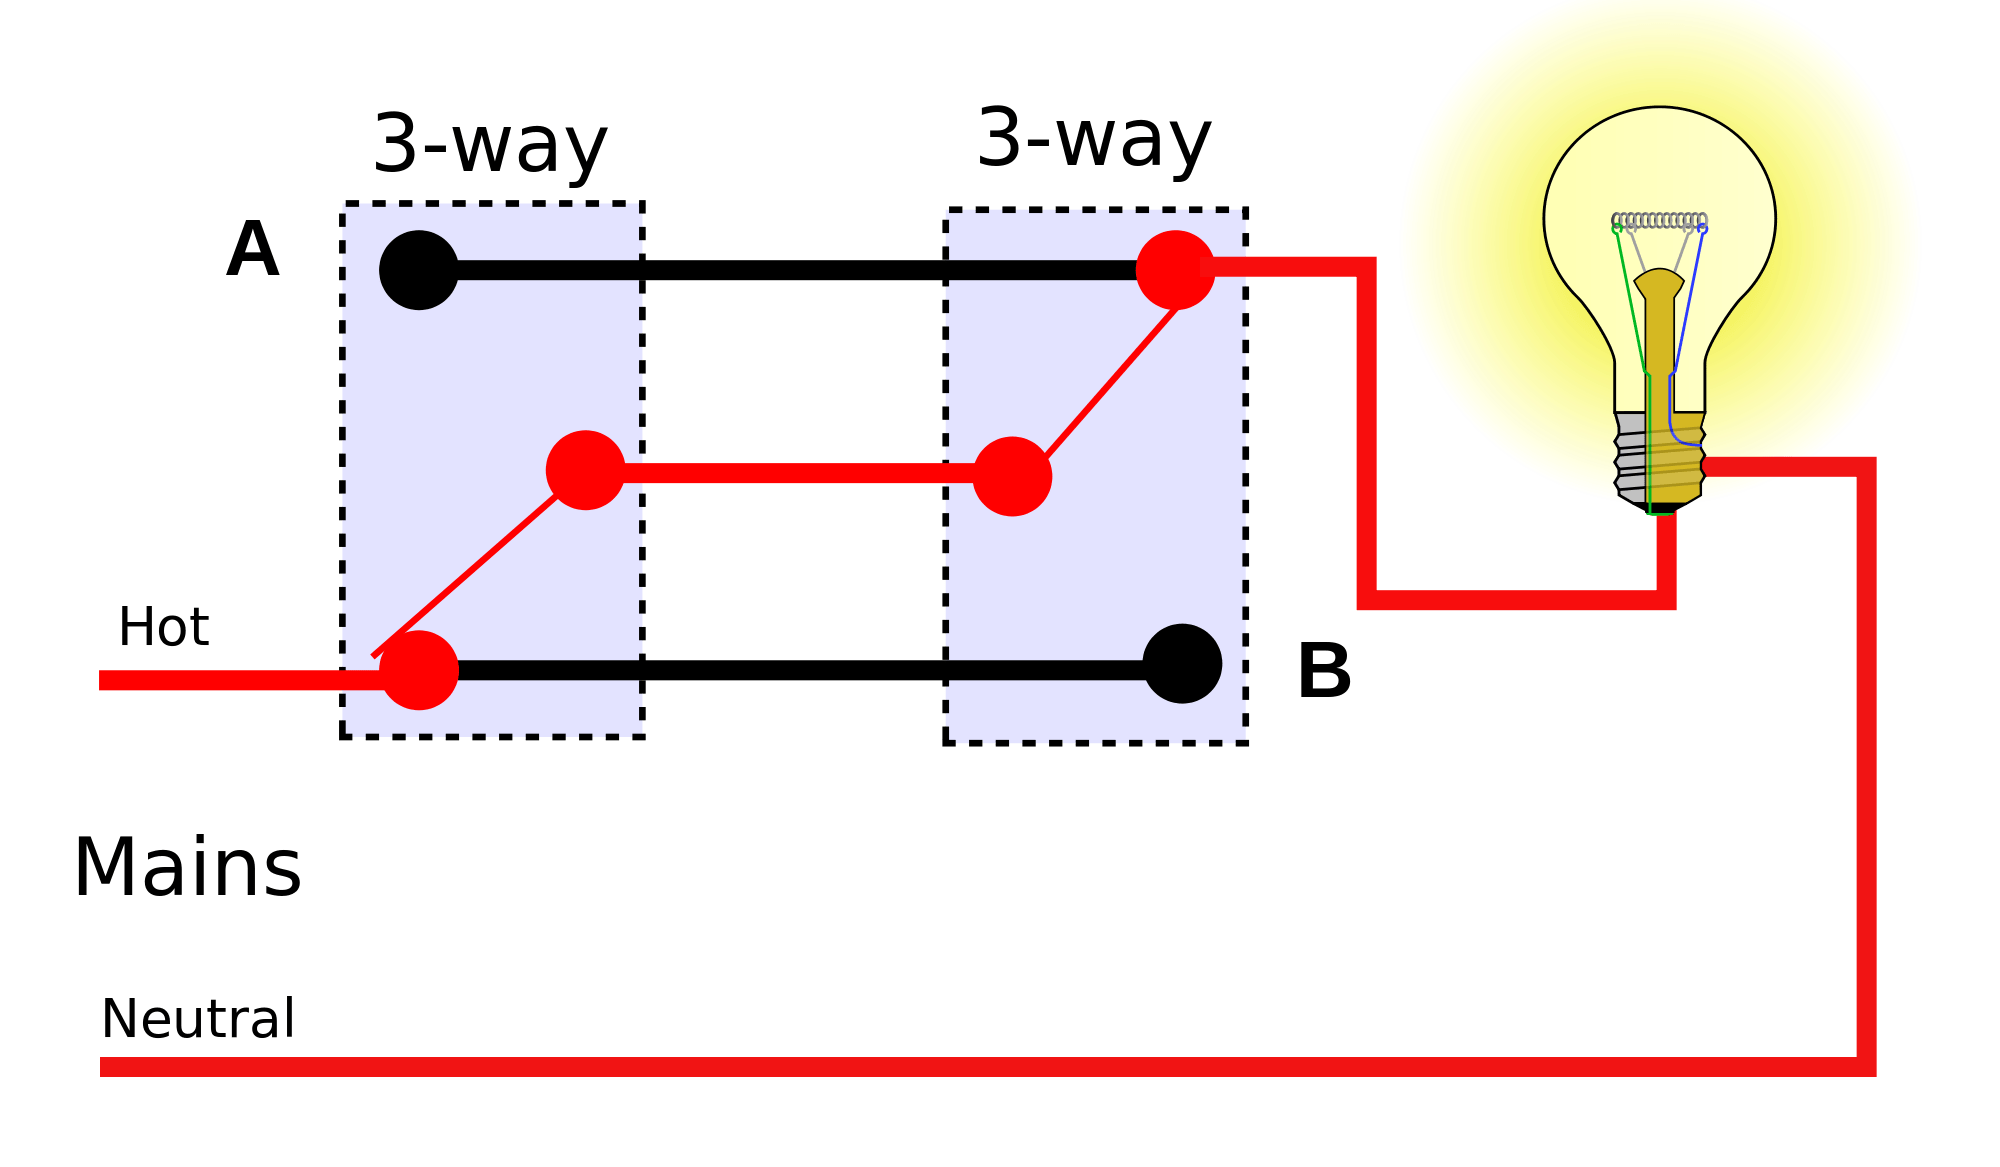 Dimmer Switch Wiring Diagram Besides 3 Way Switch With Dimmer Wiring